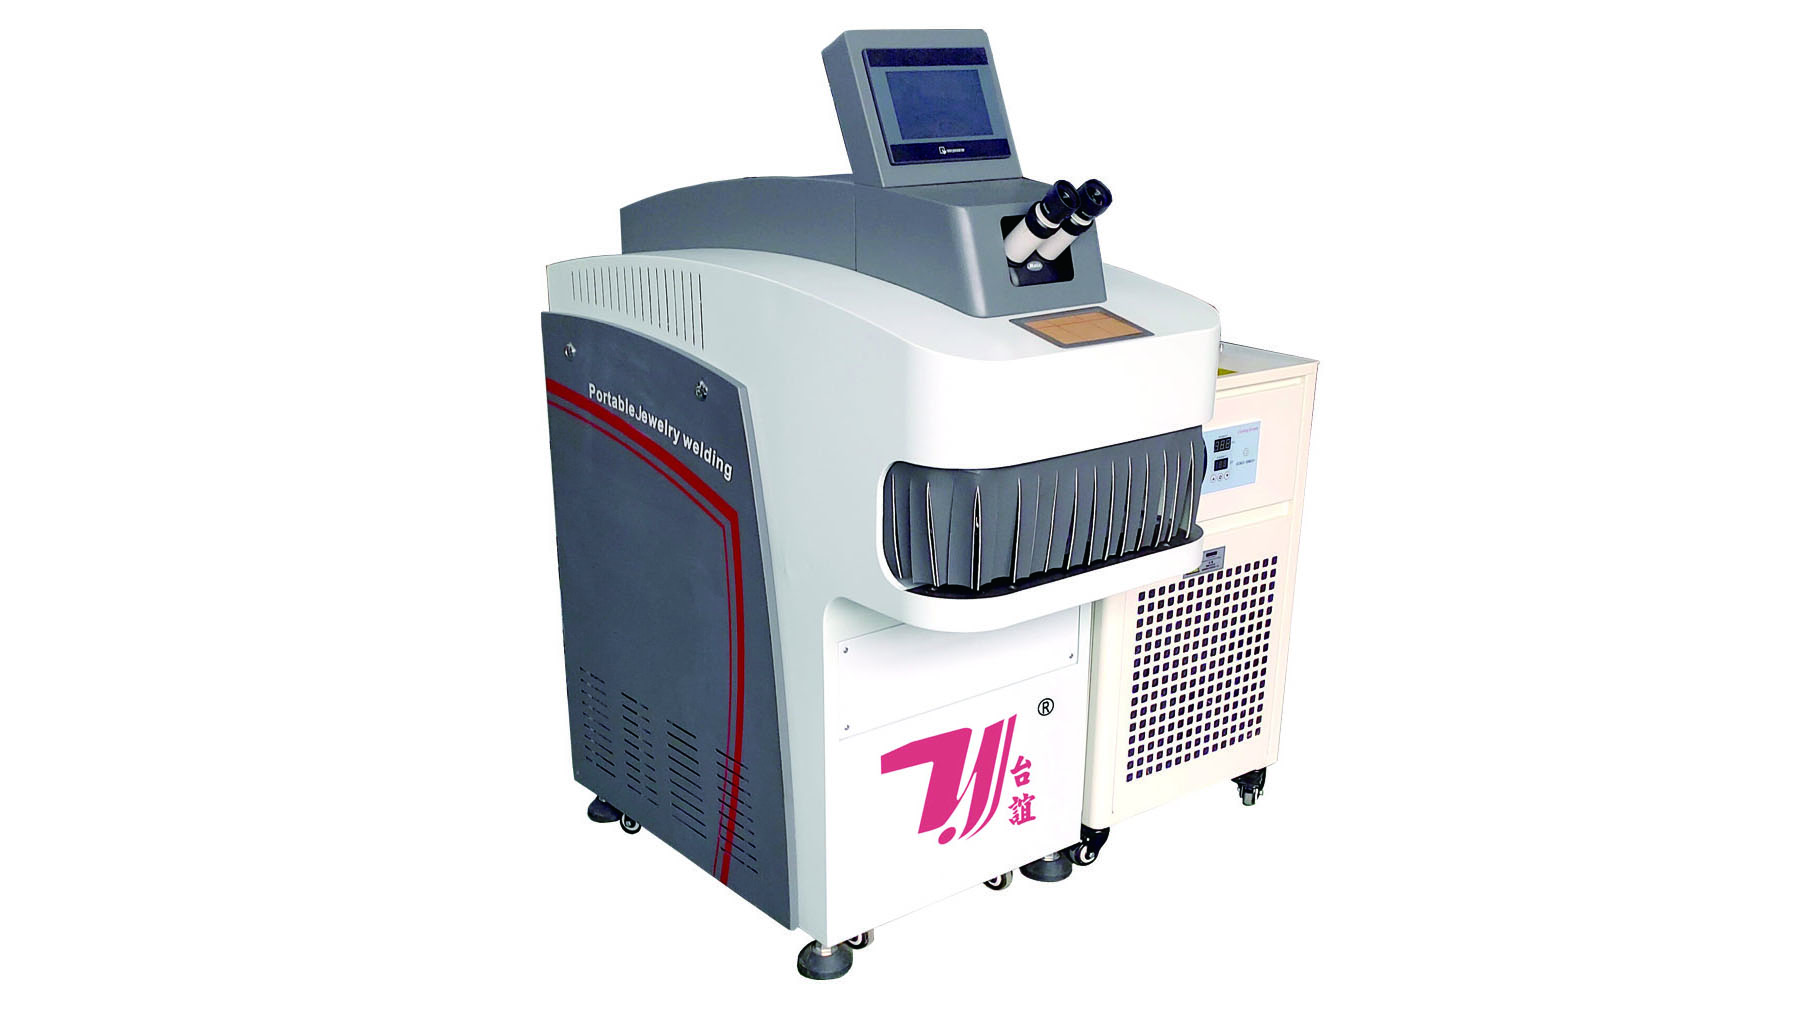 YAG 200W Laser Mould Welder Machine For Jewelry Mold Repairing